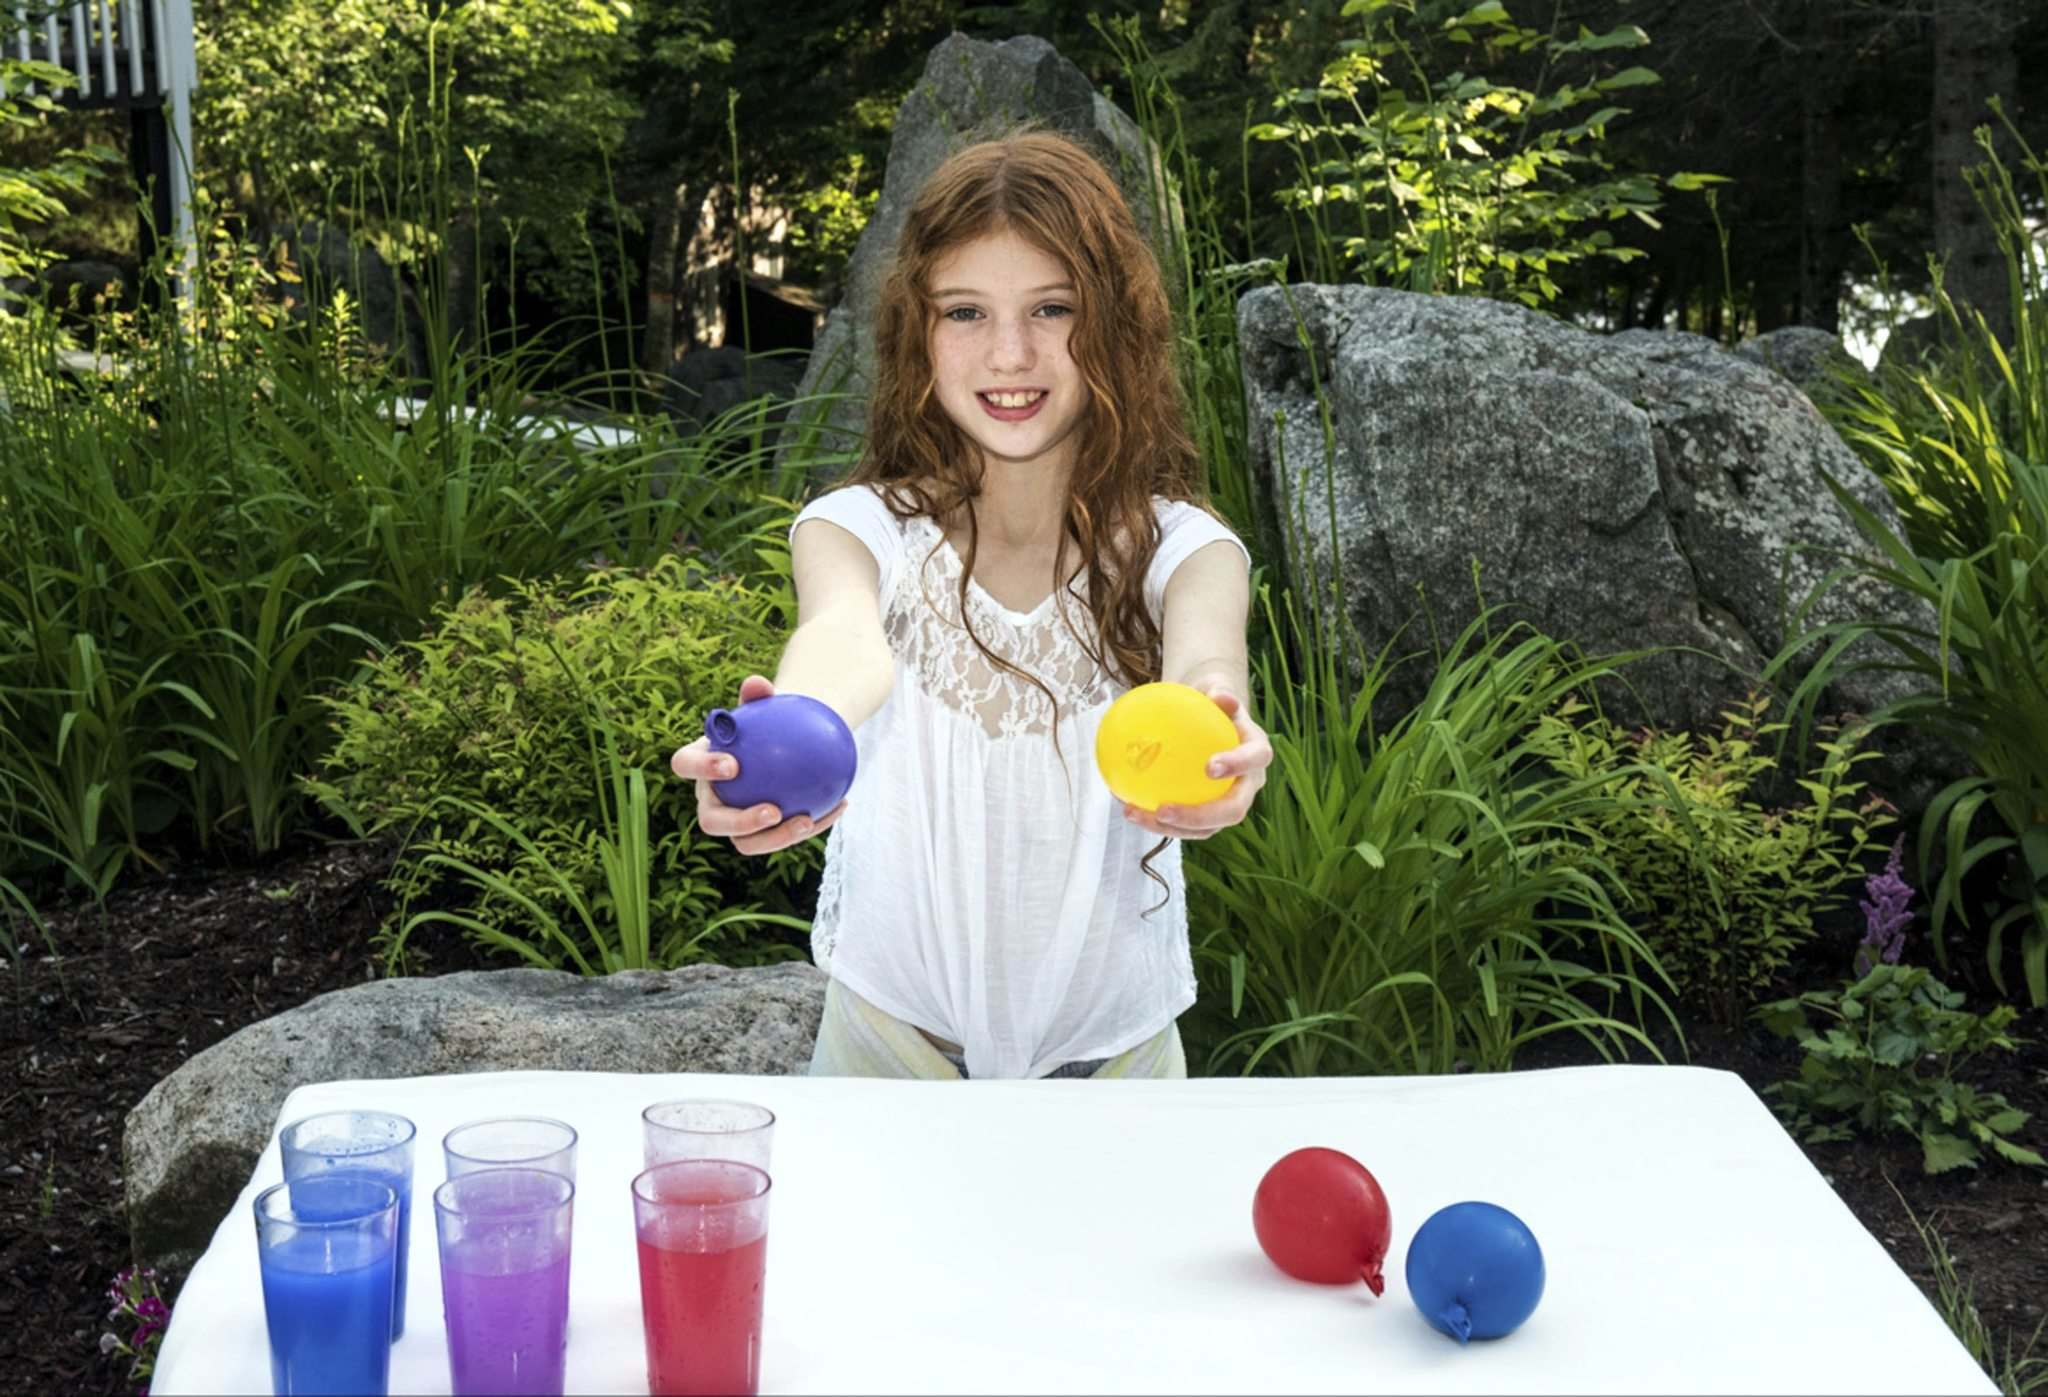 SUPPLIED</p><p>Carlie Weinreb, 9, holds up homemade stress balls she sells along with lemonade.</p>